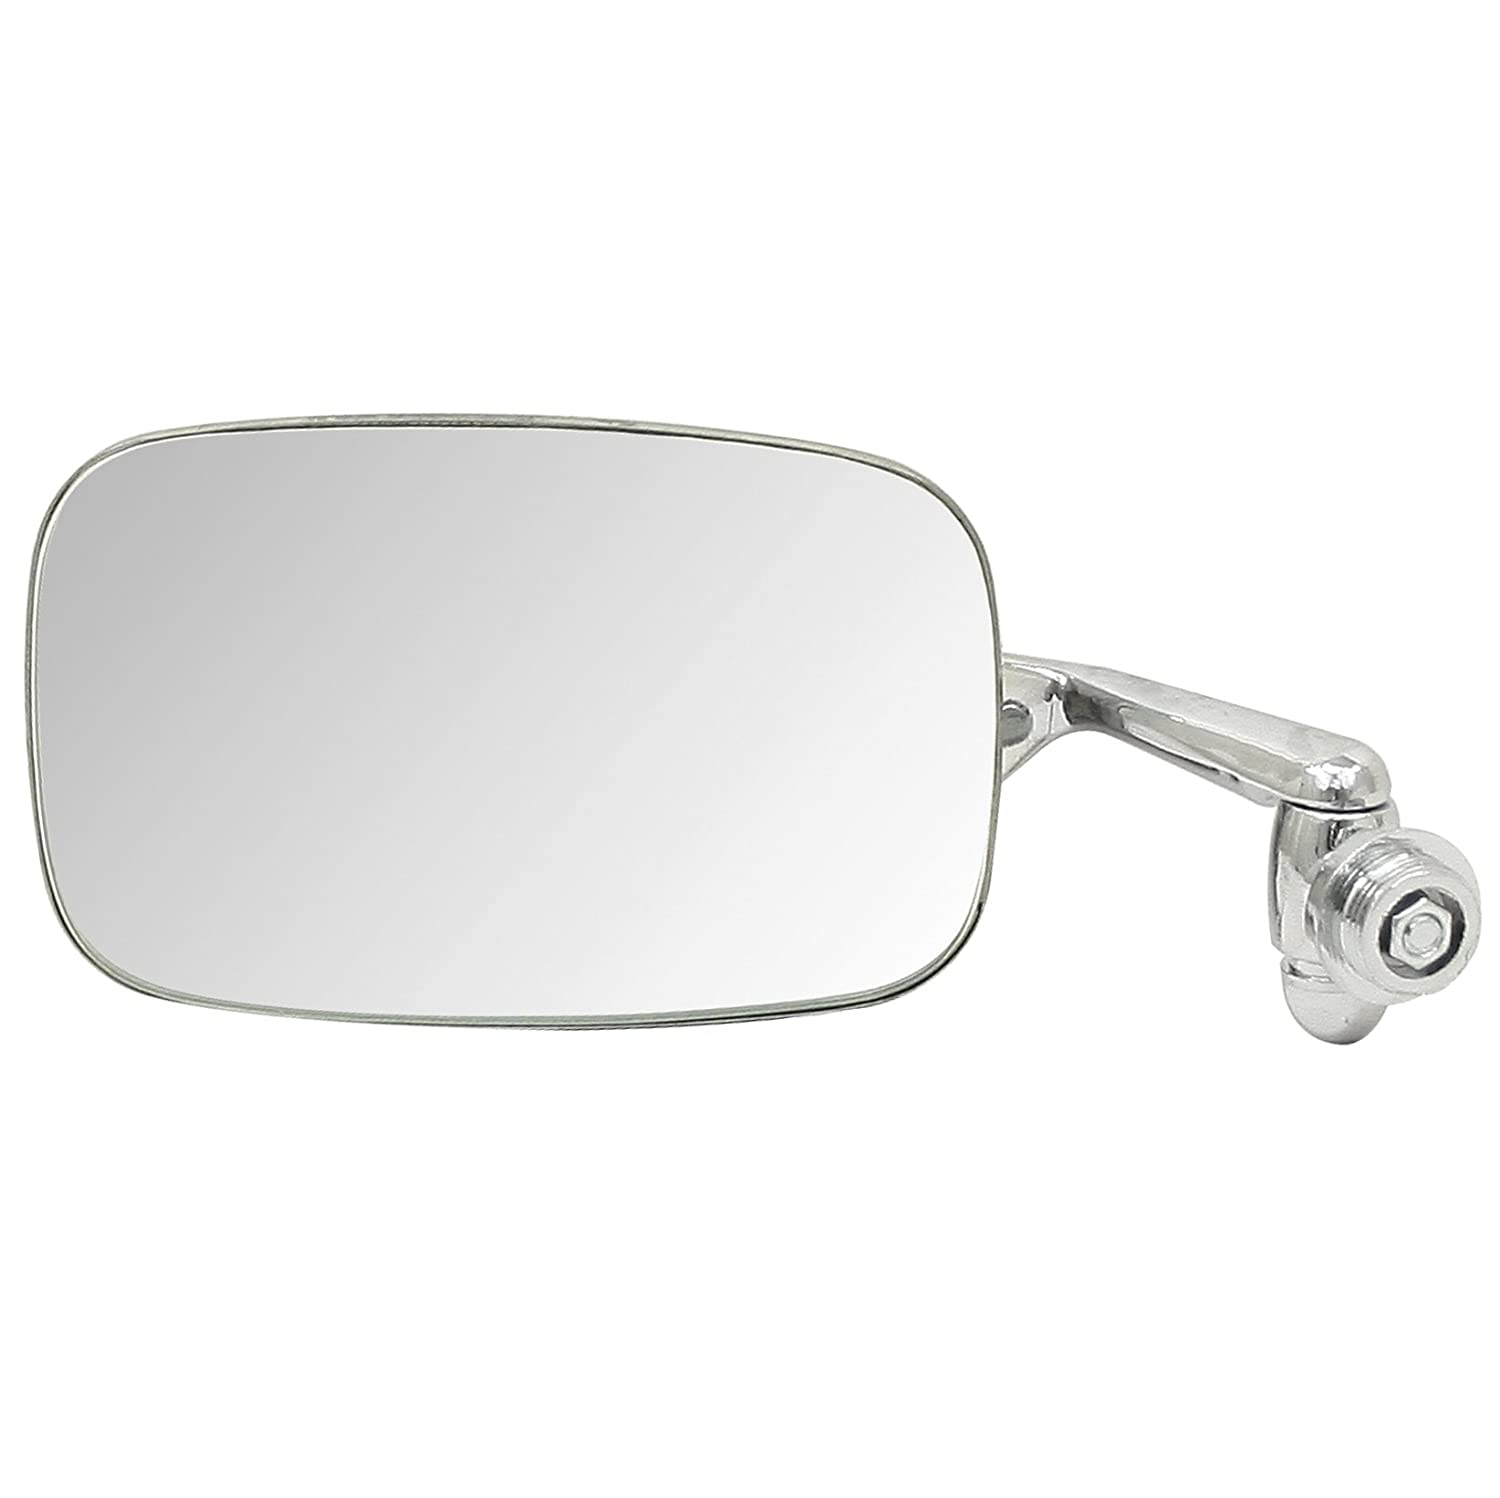 EMPI 98-8571 Outside Mirror 68 /& Later Type 1 VW Volkswagen Bug Convertible Left